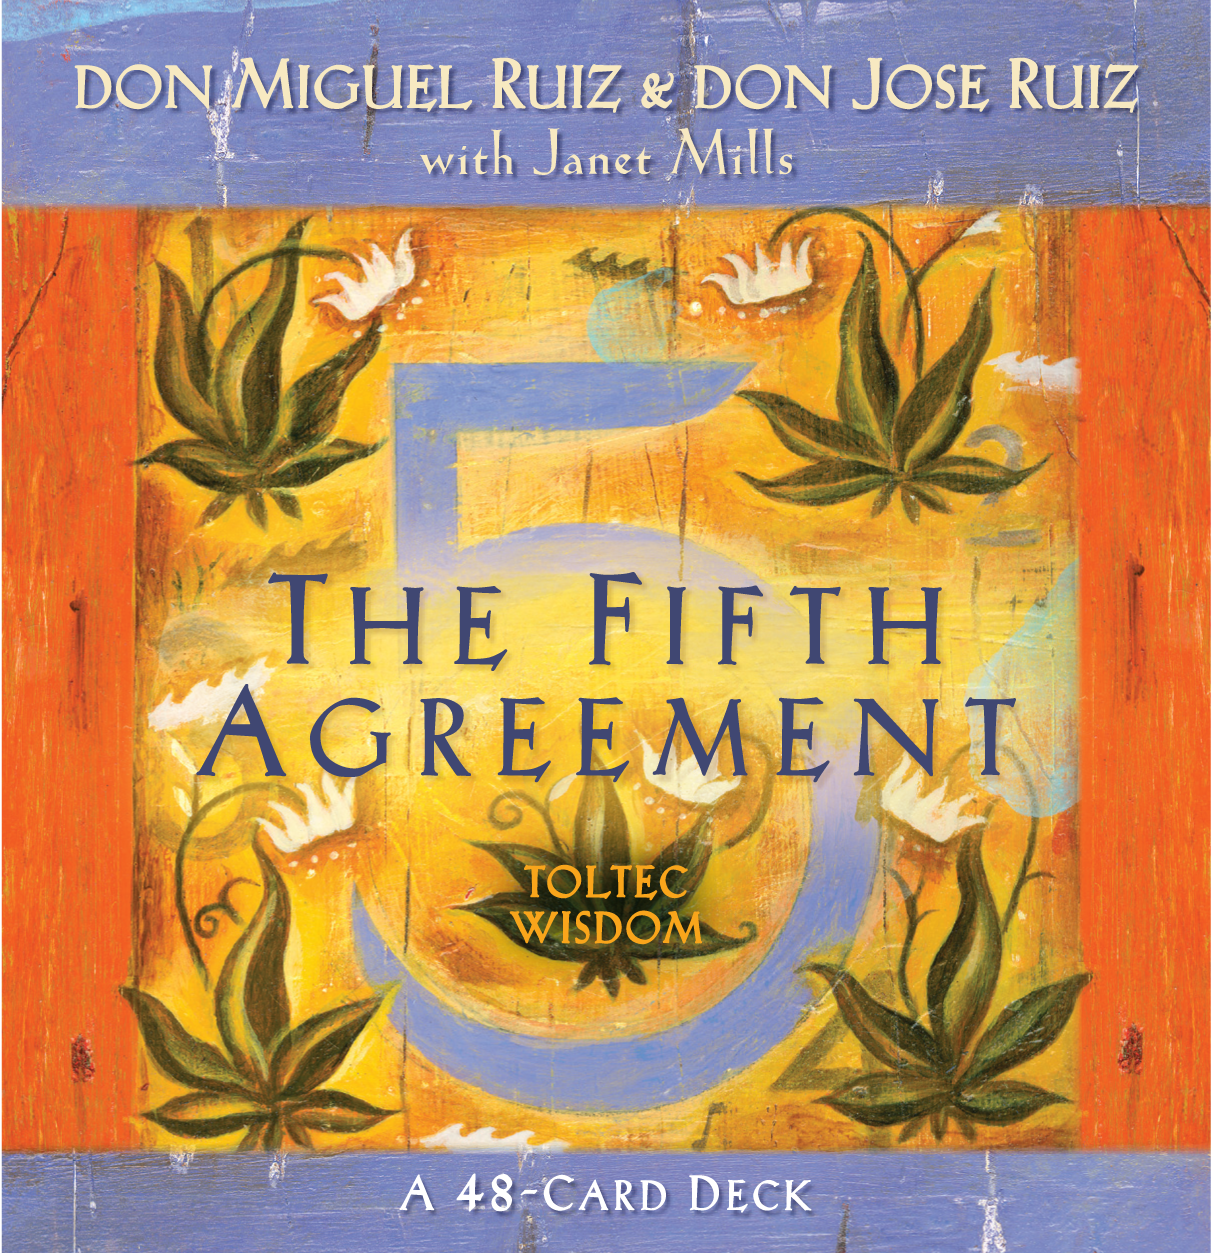 The Fifth Agreement (Card Deck) - Amber-Allen Publishing, Inc.